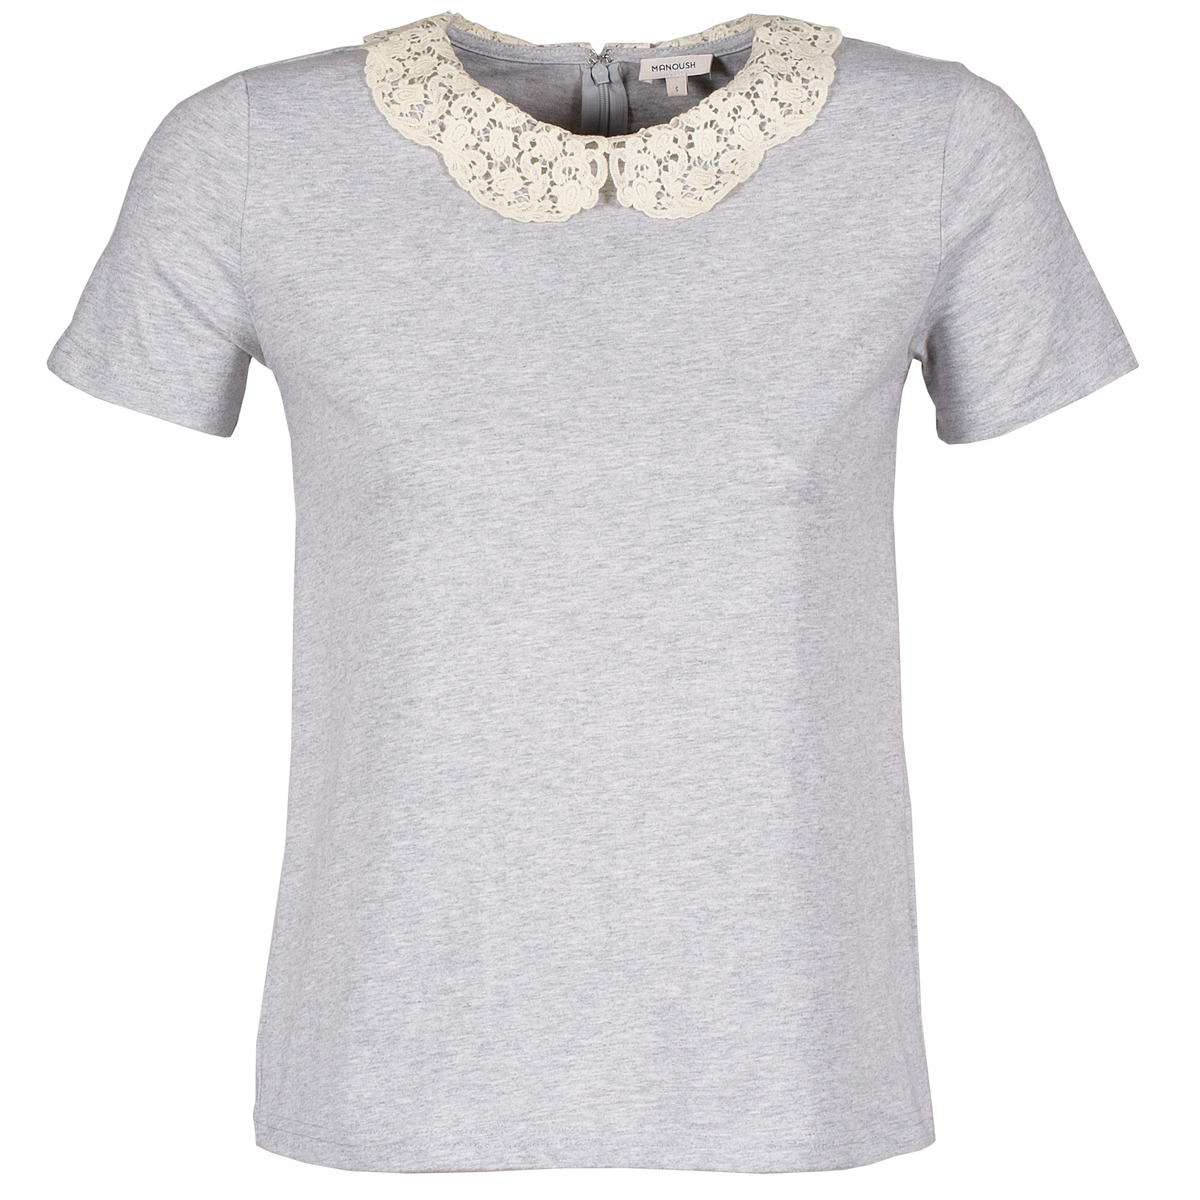 Manoush T-SHIRT Gris